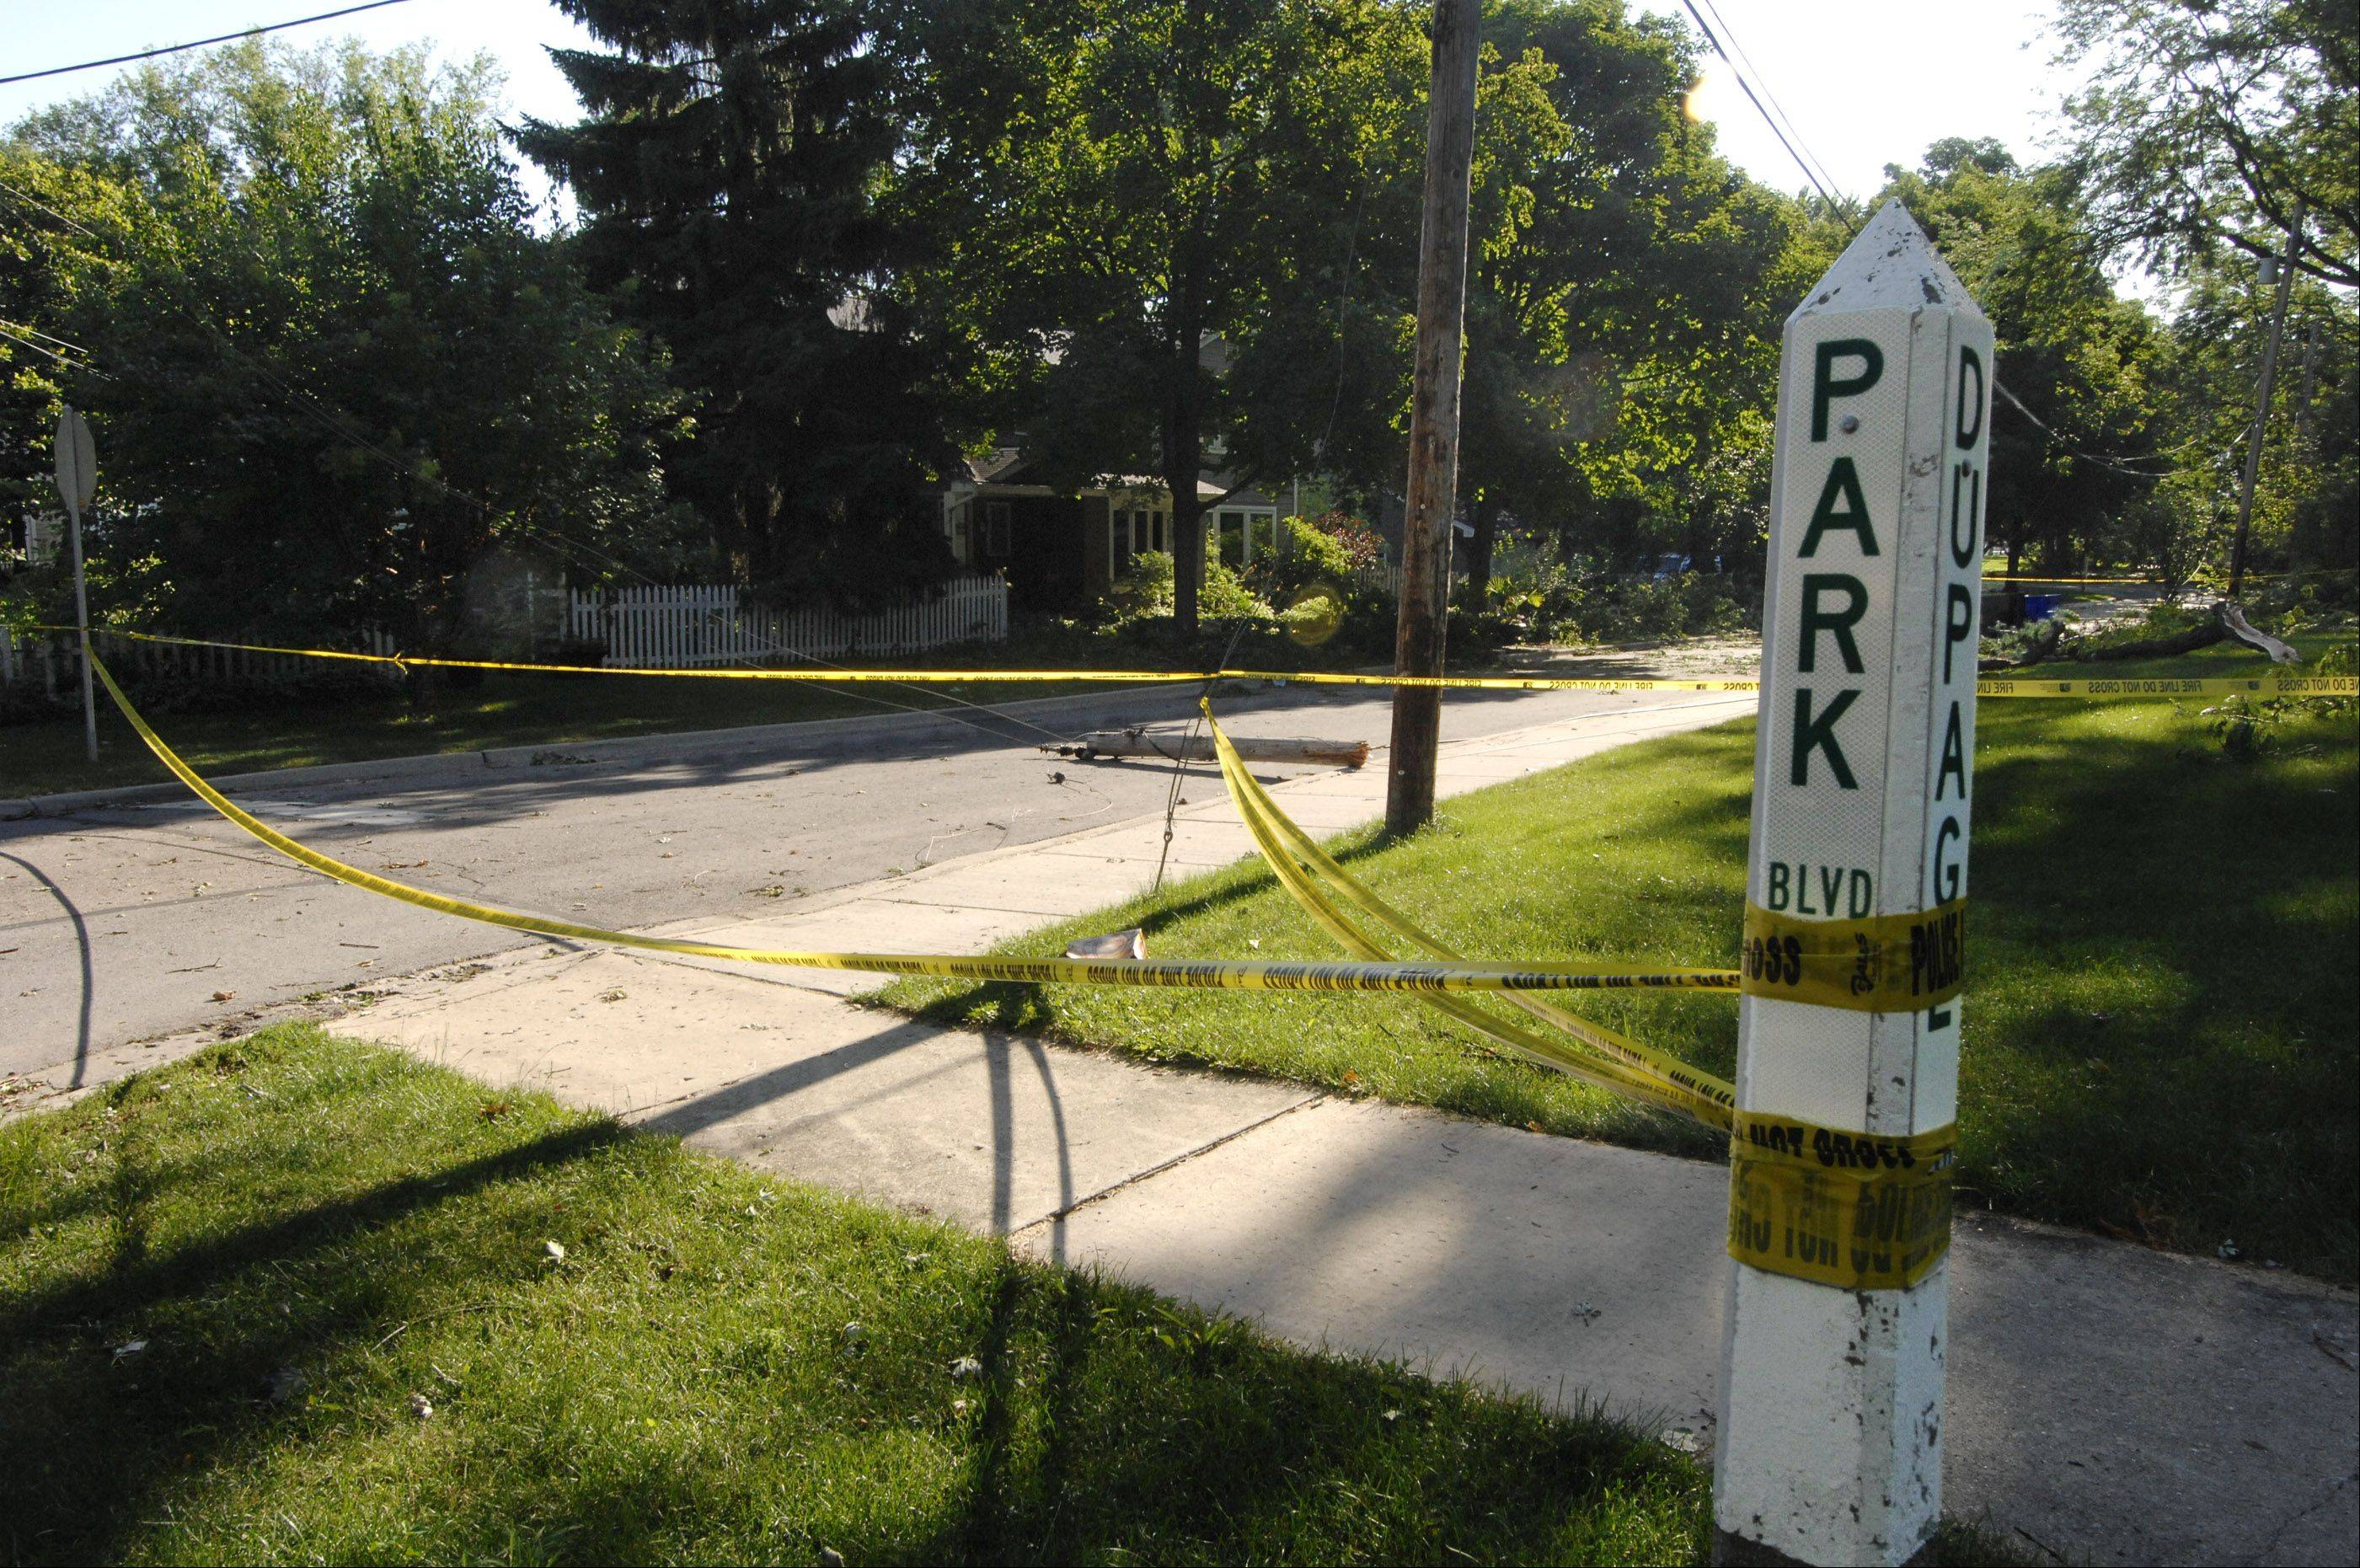 Areas in Glen Ellyn are still affected by yesterday's storm such as the intersection of Park Blvd., and DuPage Blvd., where part of a power line pole still lays in the street, which is closed.